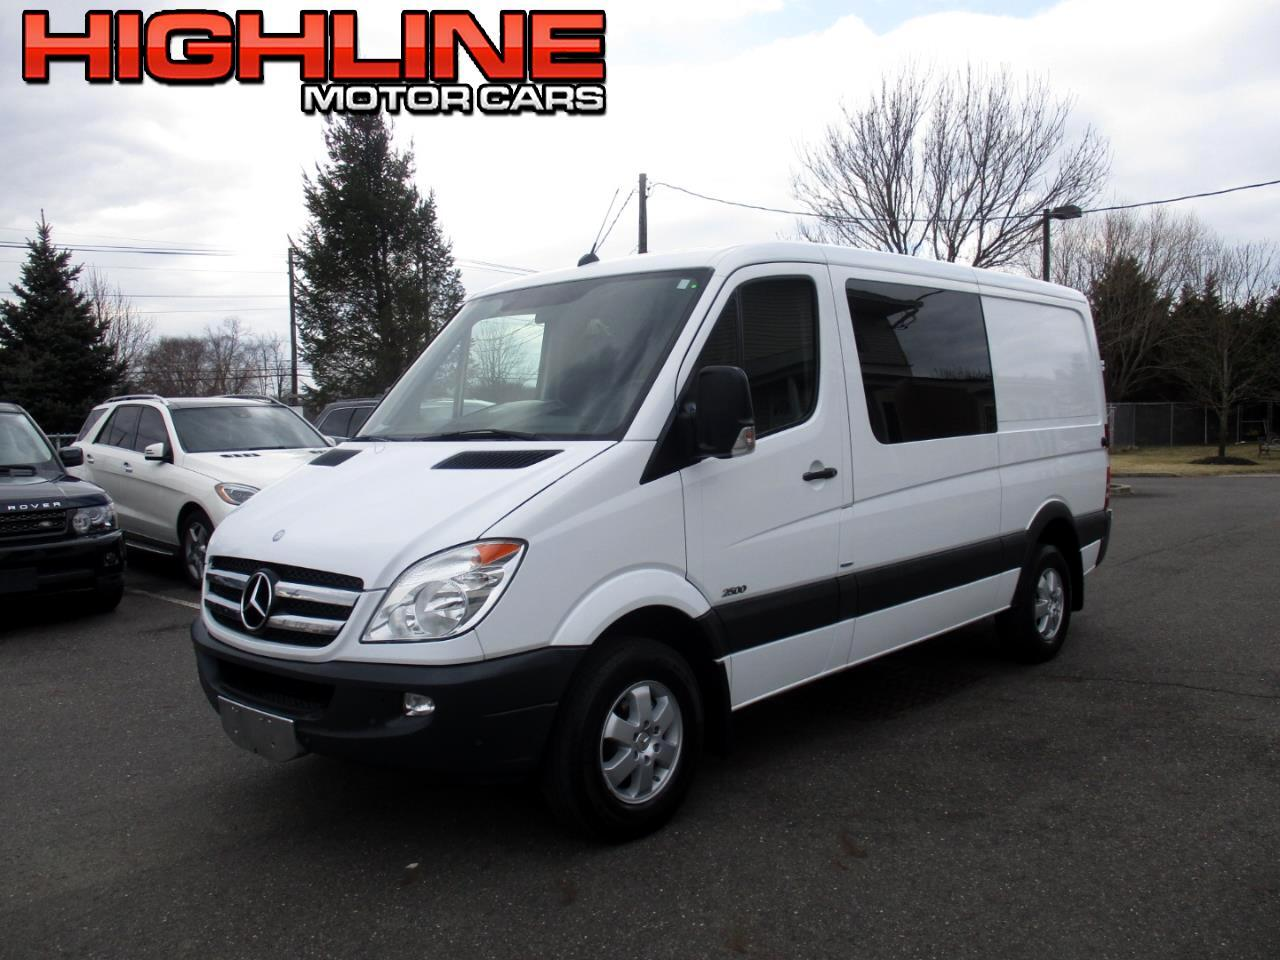 2013 Mercedes-Benz Sprinter Vans 2500 144""